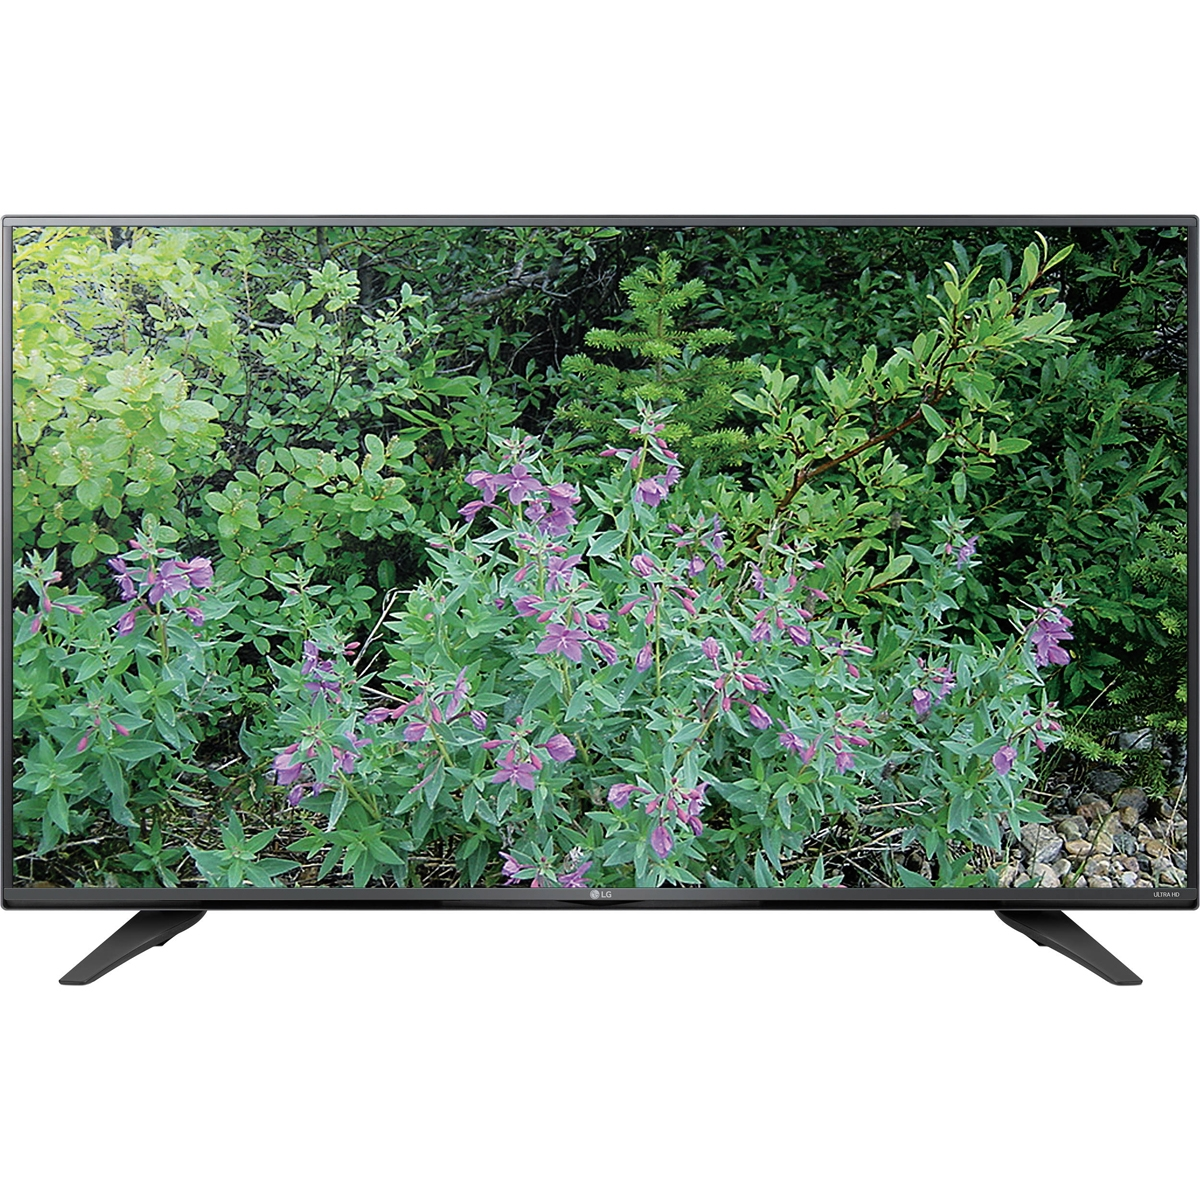 LG 55 INCH CLASS UHD 4K  SMART HDTV - 55UF7600 - RESIDENTIAL USA VERSION -LG ORIGINAL PANEL - FULL ONE YEAR MANUFACTURERS WARRANTY!